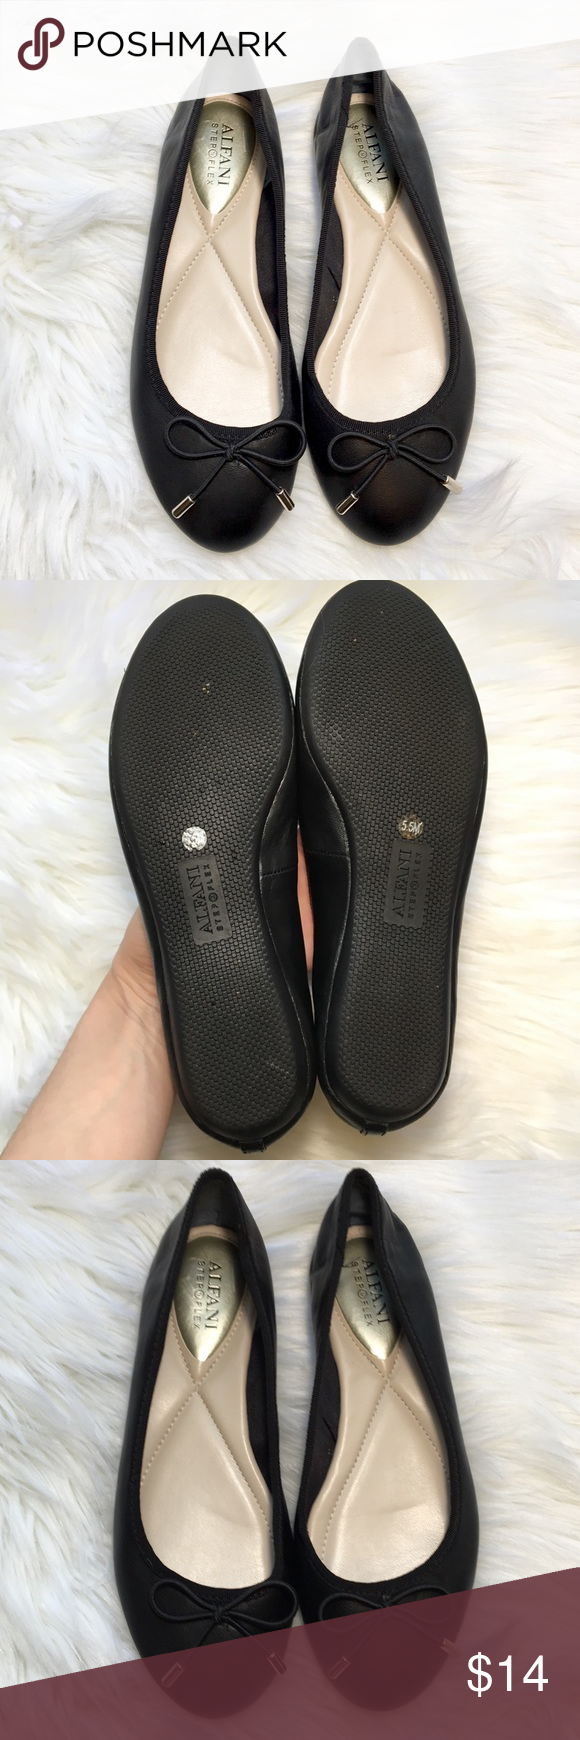 f8087299733b Alfani Aleaa Step  N Flex Ballet Flats SZ 5.5 Alfani Aleaa Step N Flex  Ballet Flats • Size Women s 5.5 • Excellent used condition (please see  photos-- there ...